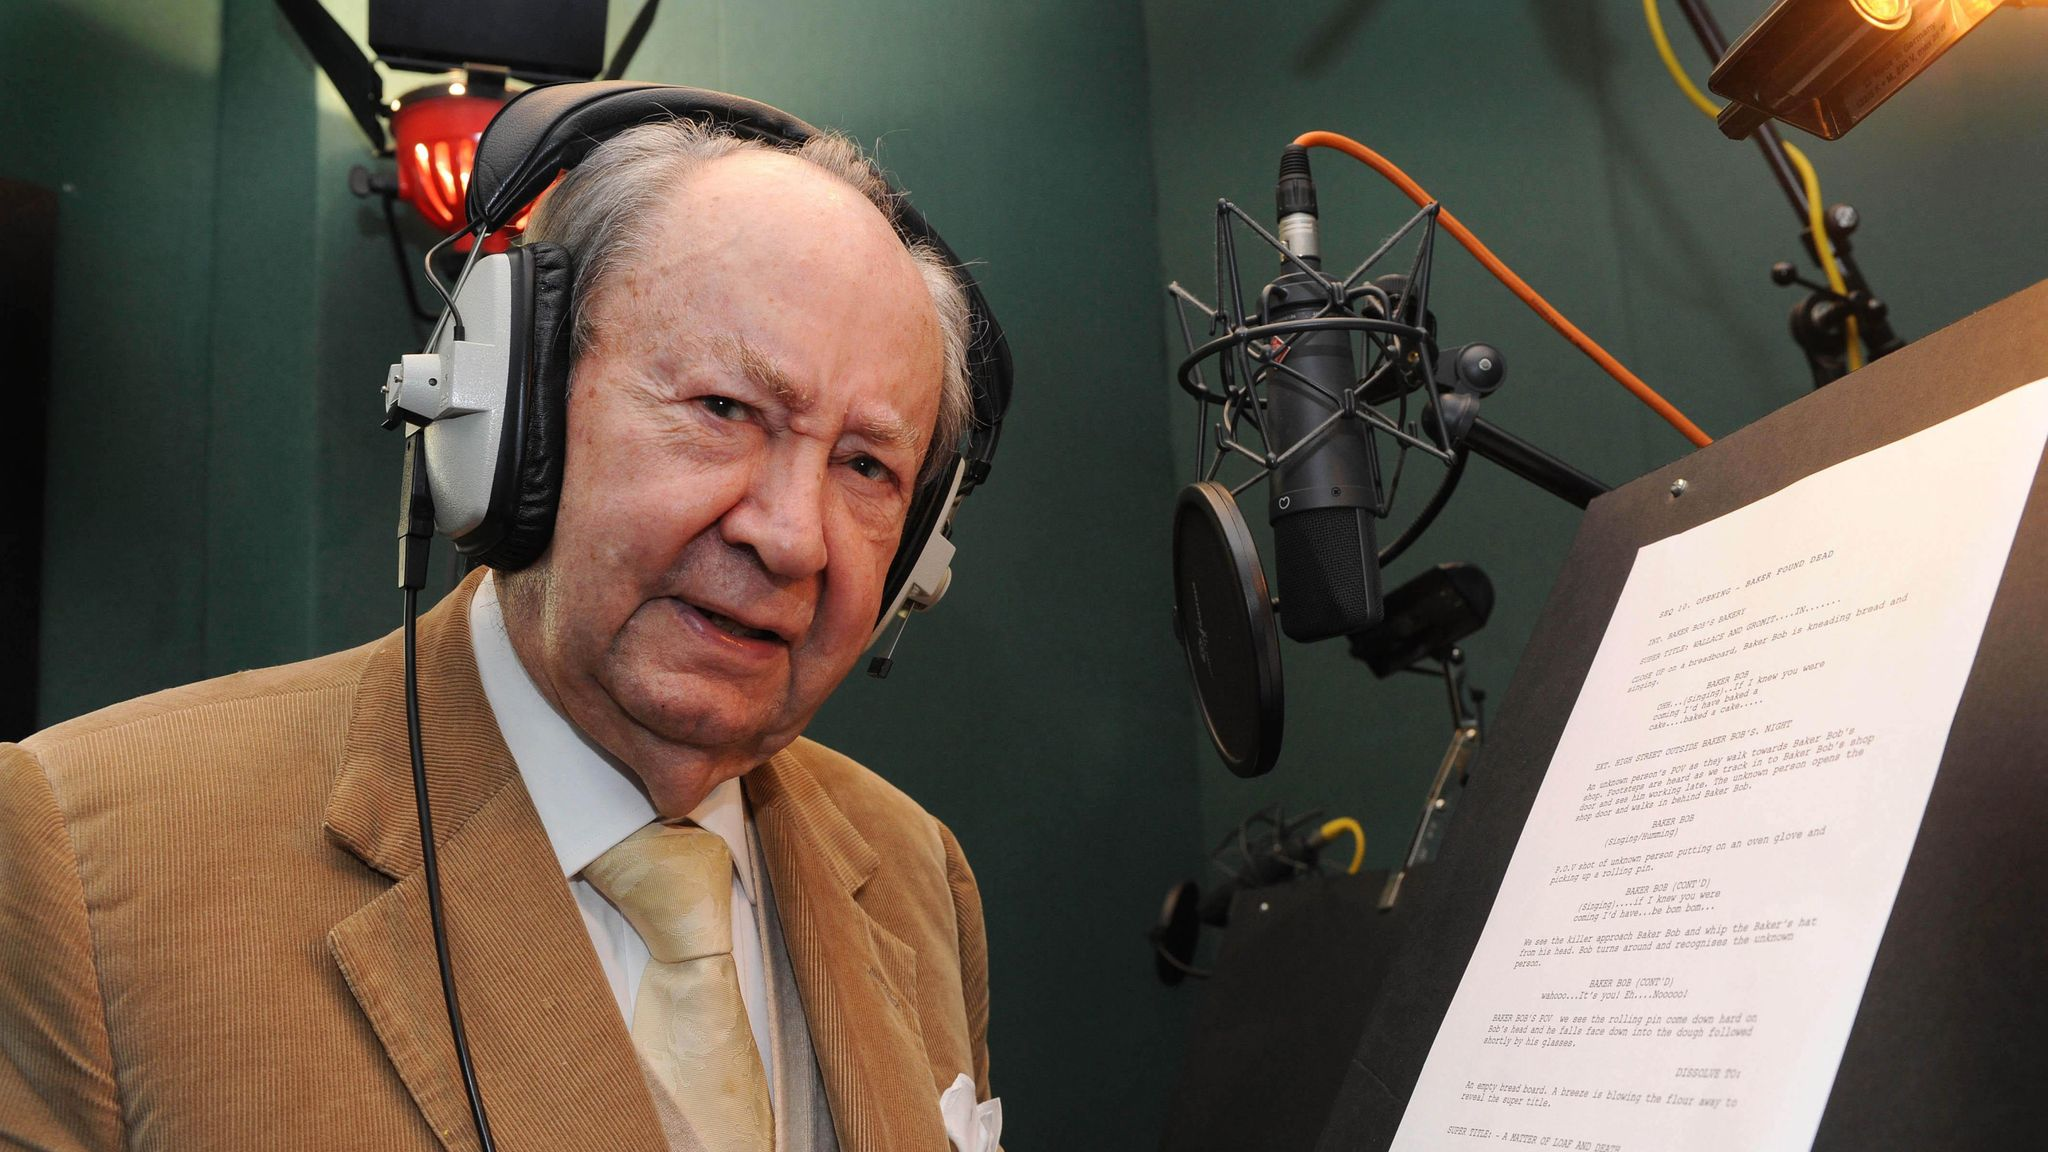 Peter Sallis in the recording studio for a Wallace And Gromit TV special